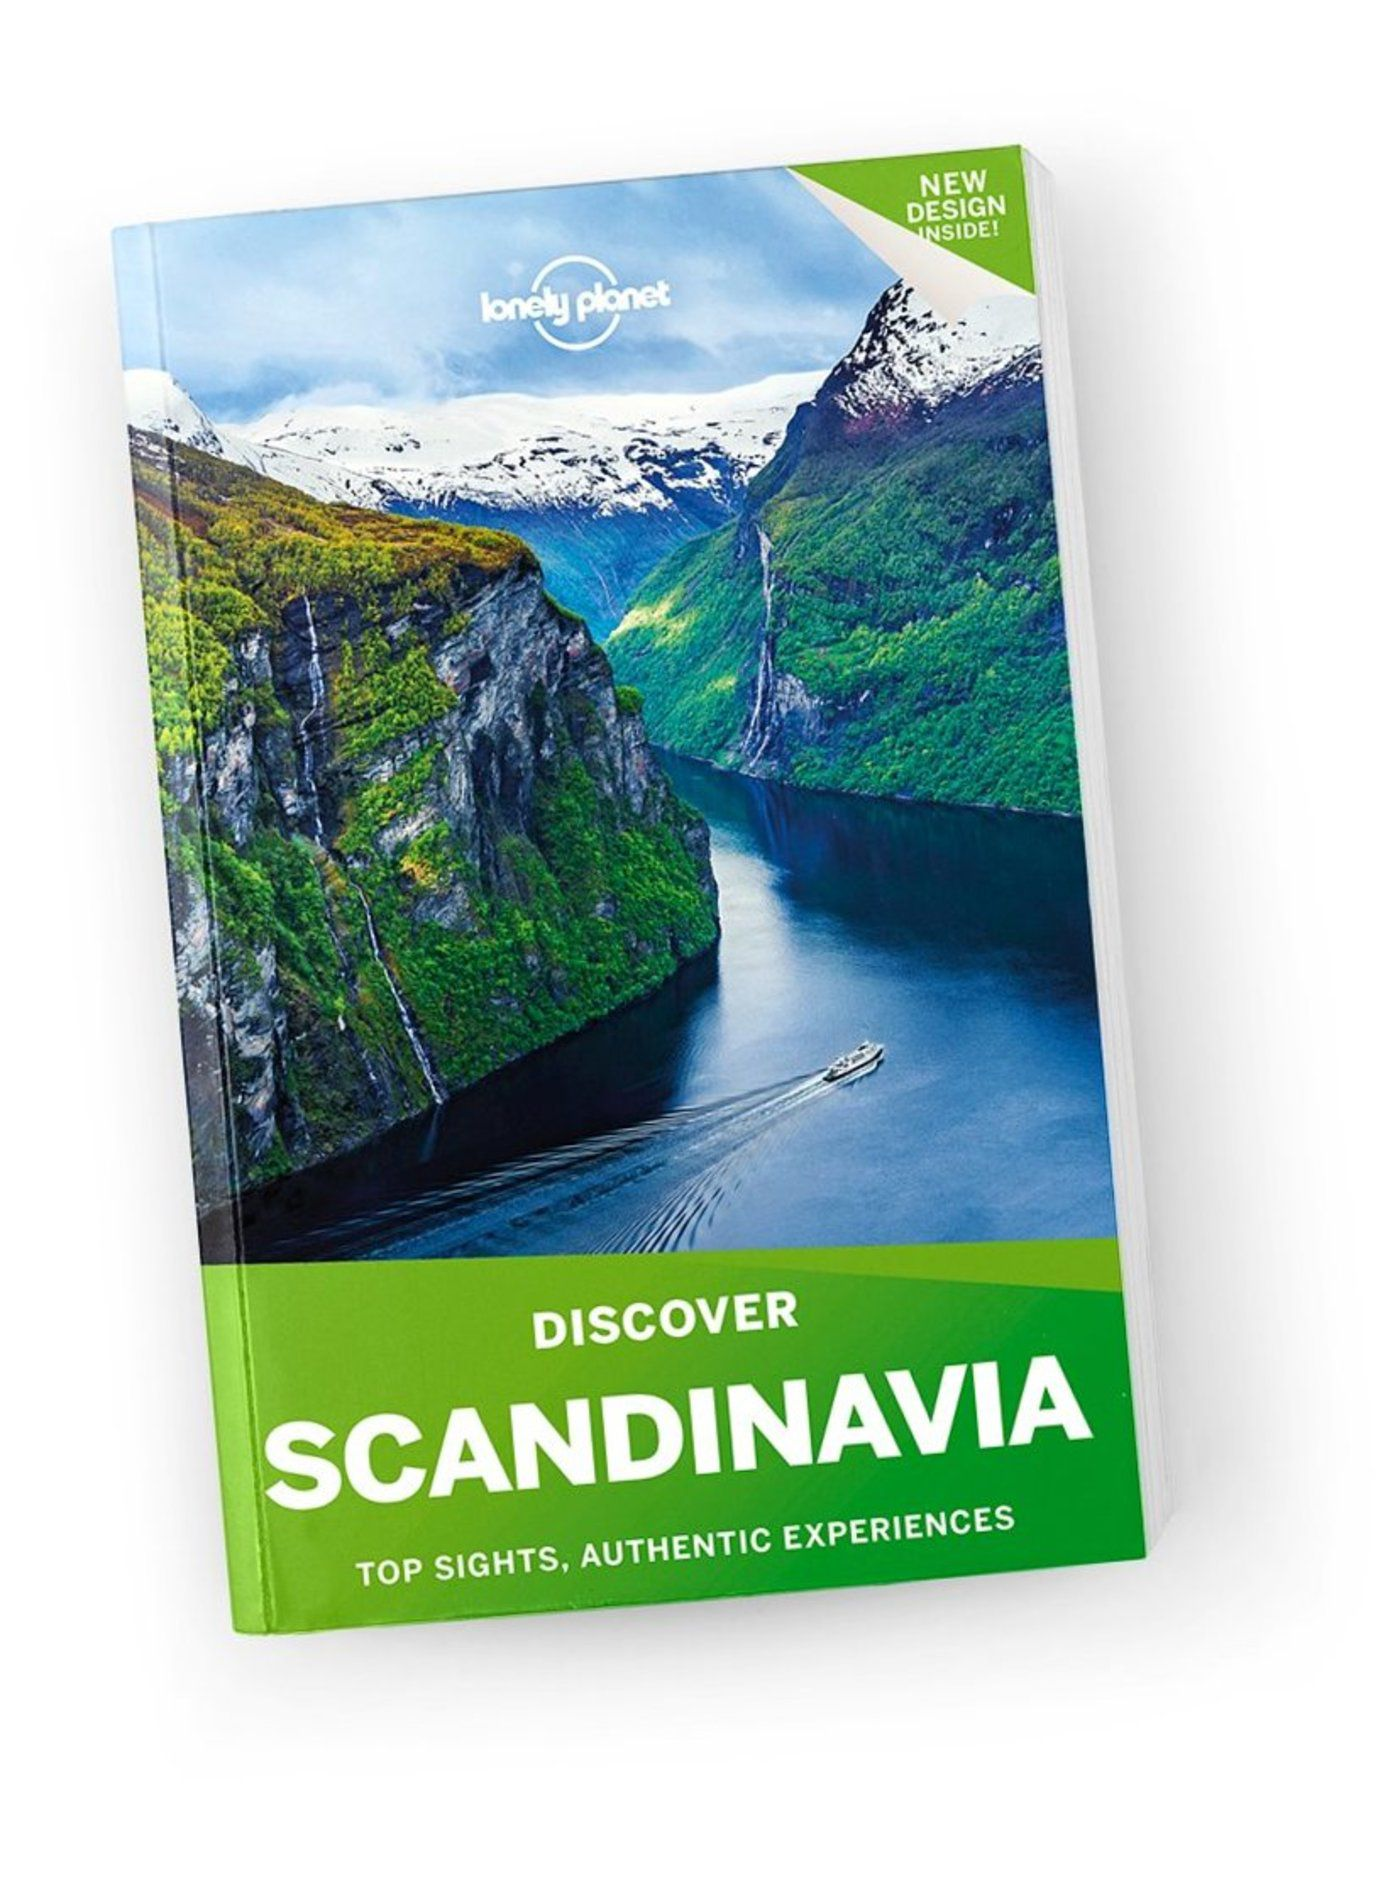 Discover Scandinavia travel guide